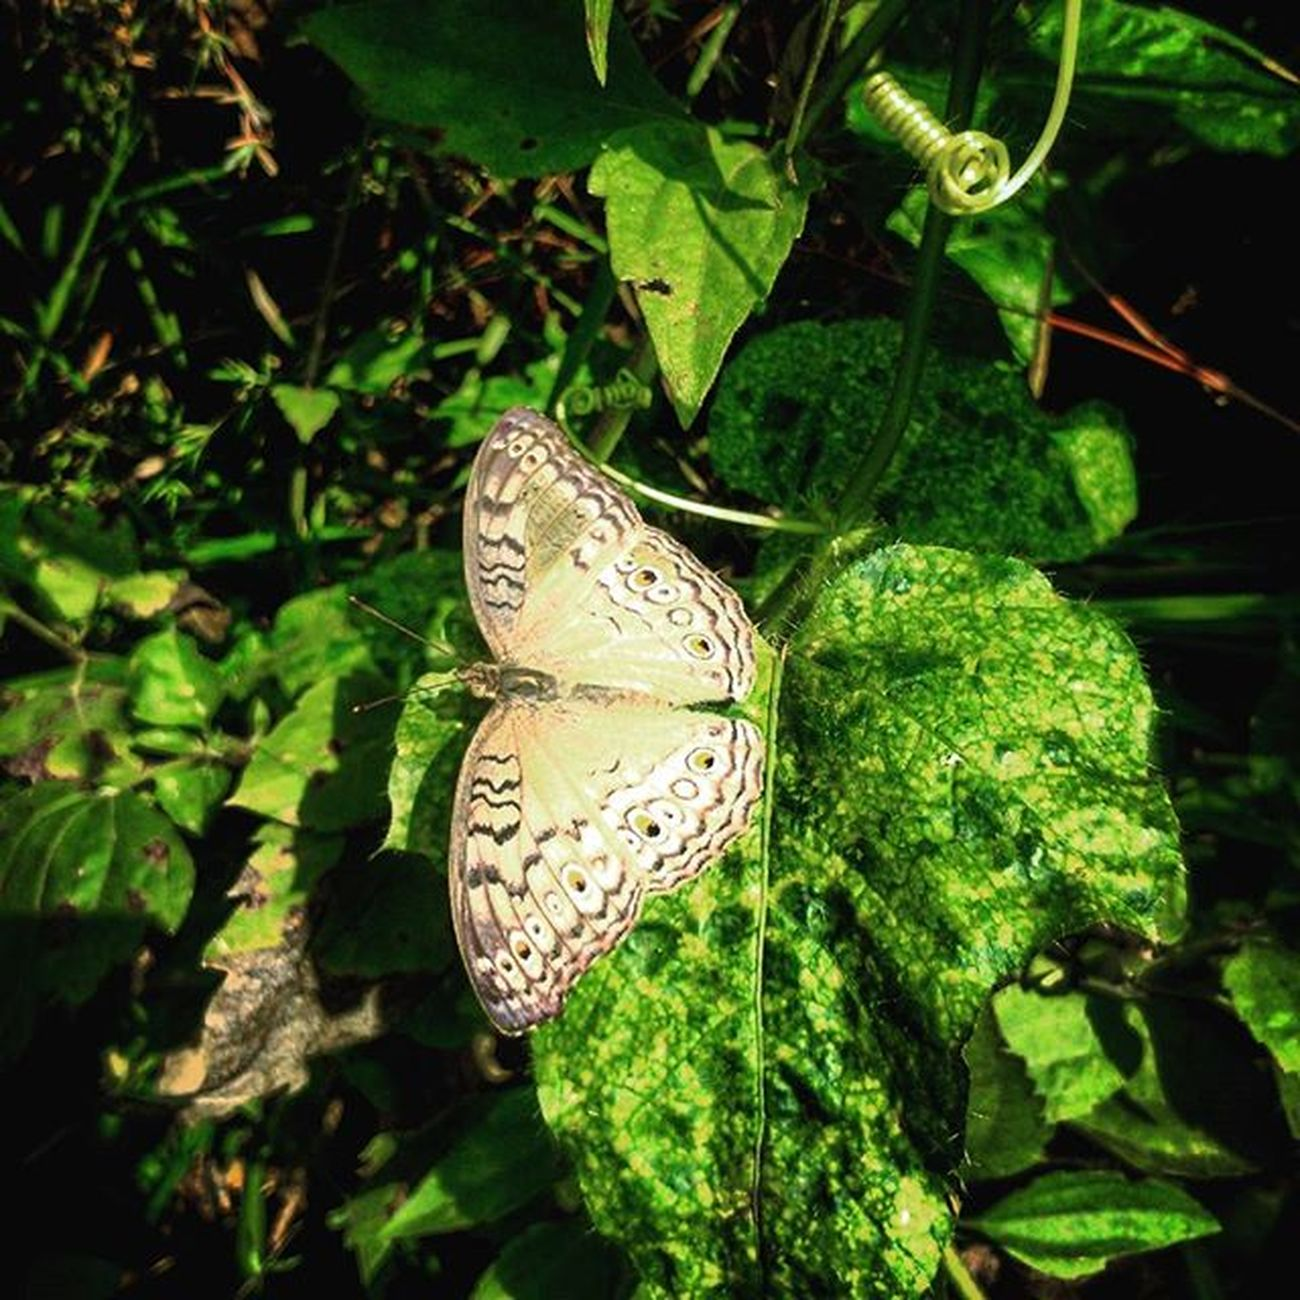 BUTTERFLY Sanpicture Grapictoolens Macrophotography Macro Macro_perfection Kupukupu Butterfly Macrovision